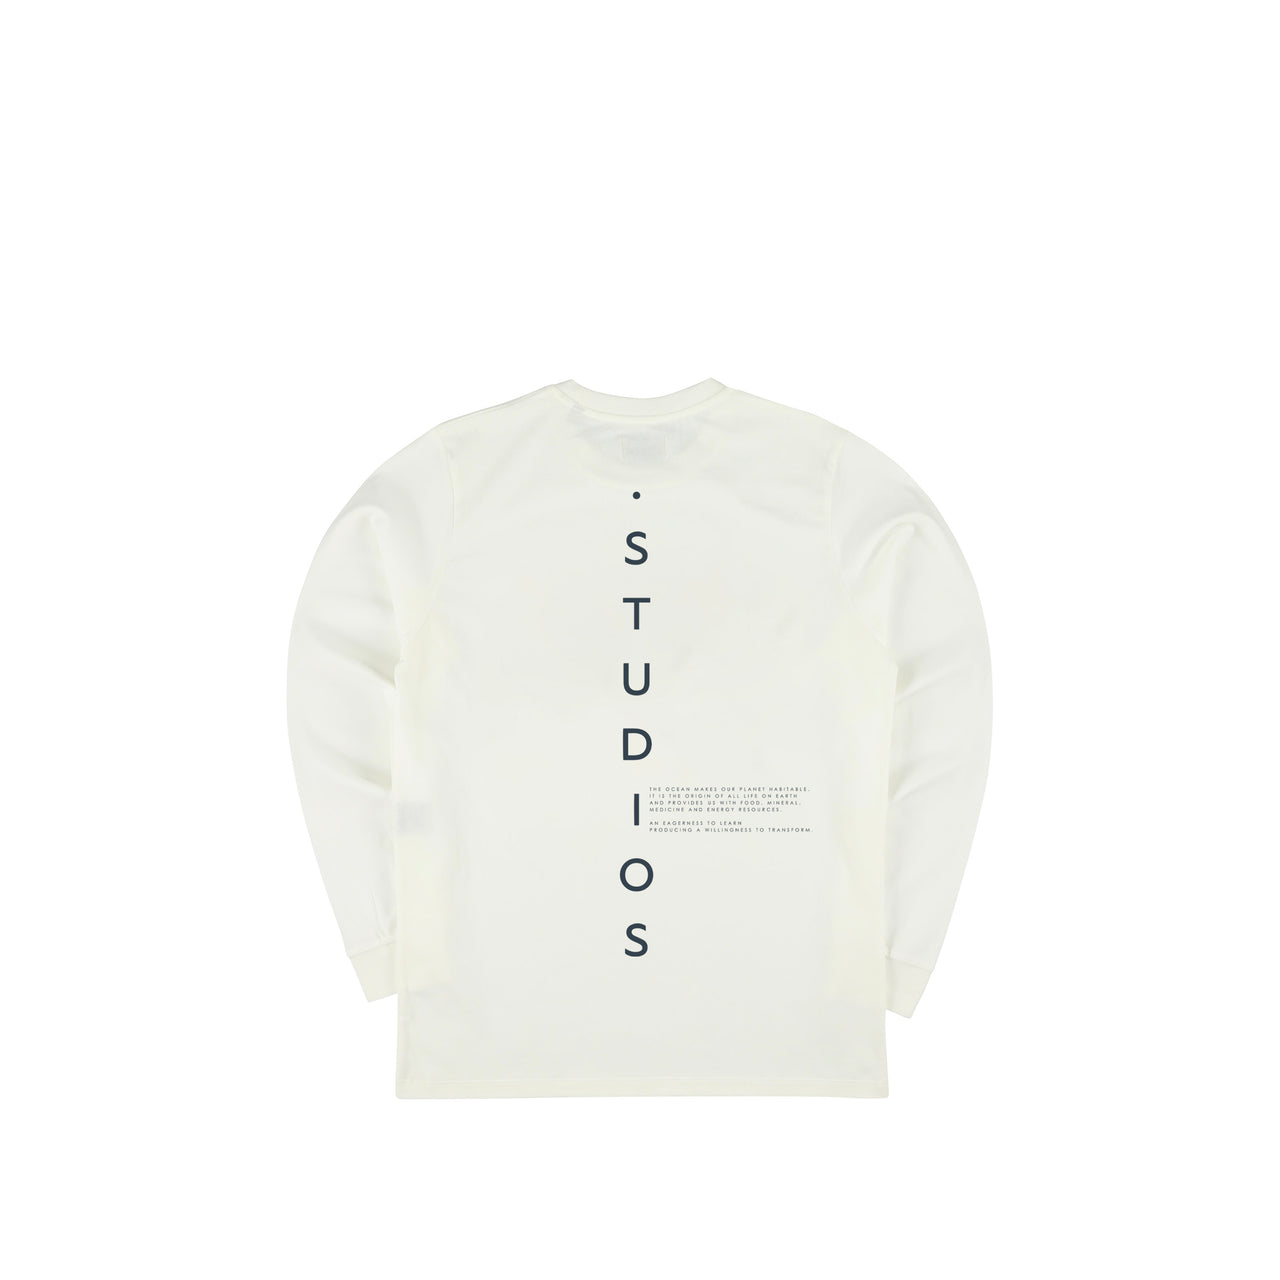 Beyond.Døtch Longsleeve - Natural / Ocean Blue